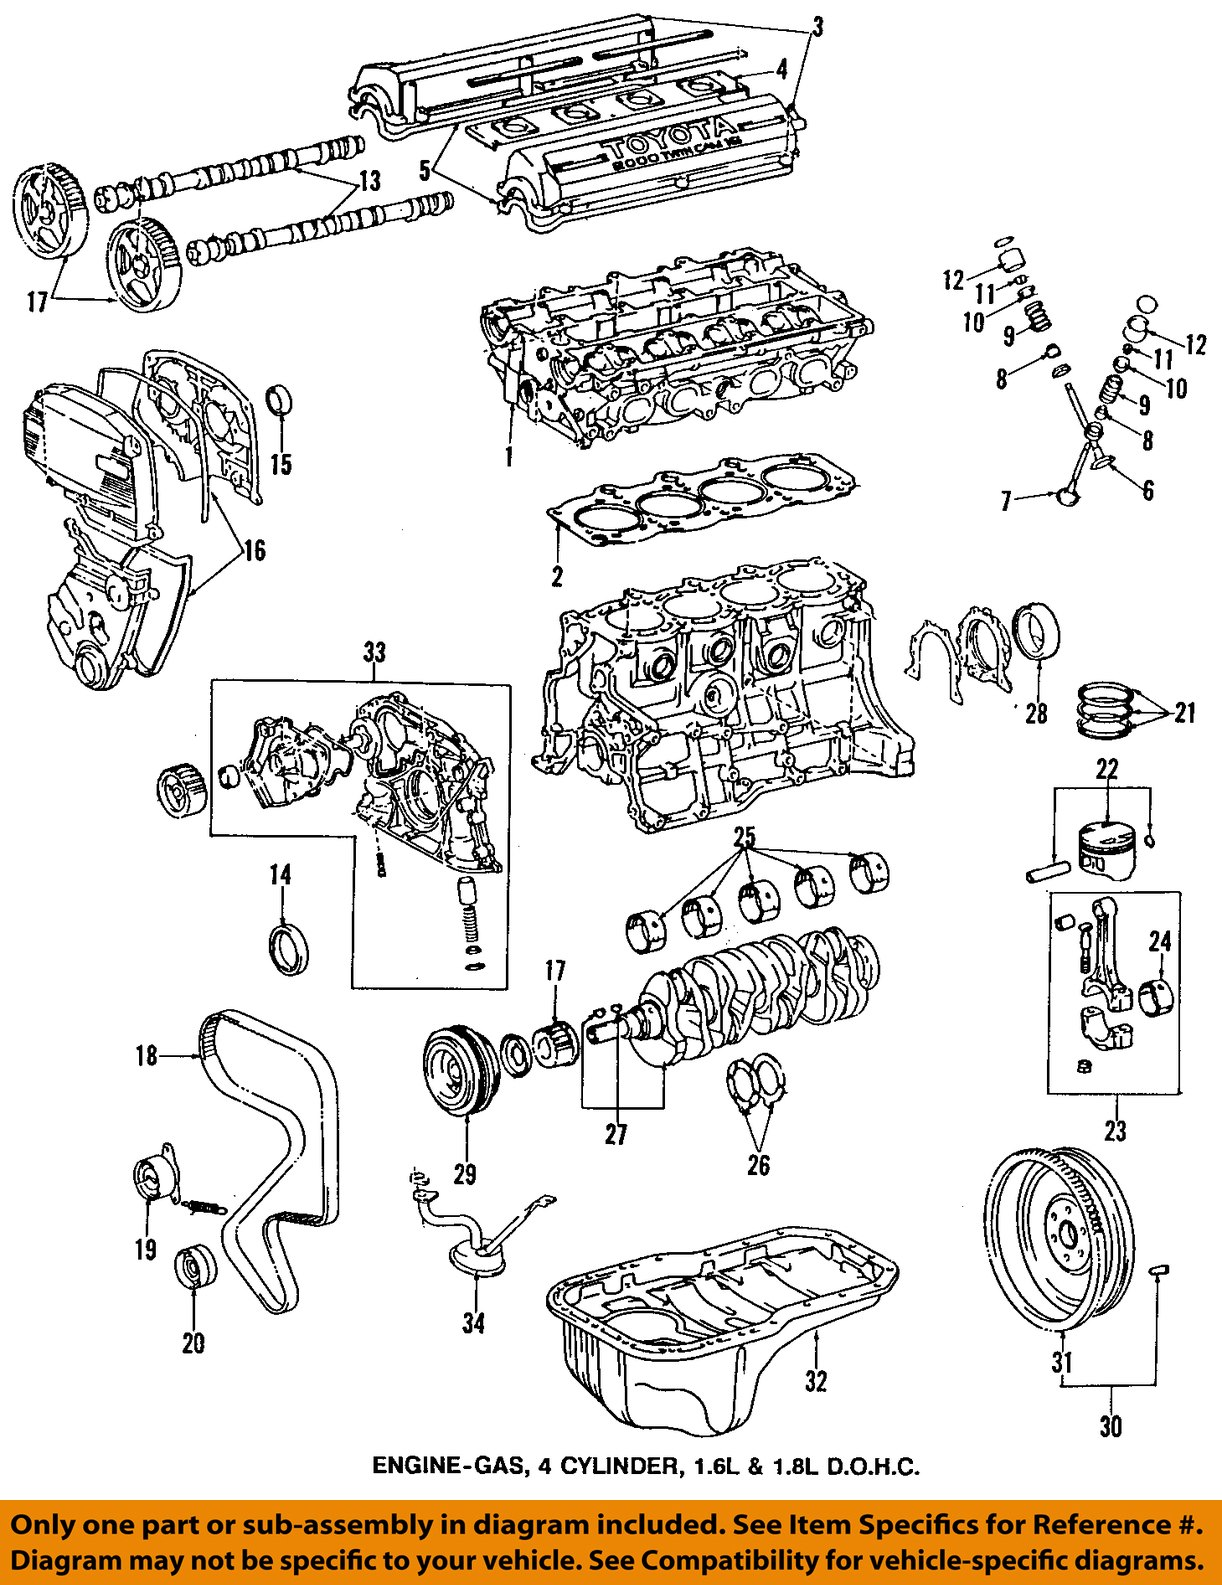 OEDIAG2_F800045 toyota oem 95 97 corolla engine timing gear sprocket 1352116050 ebay toyota corolla engine diagram at aneh.co